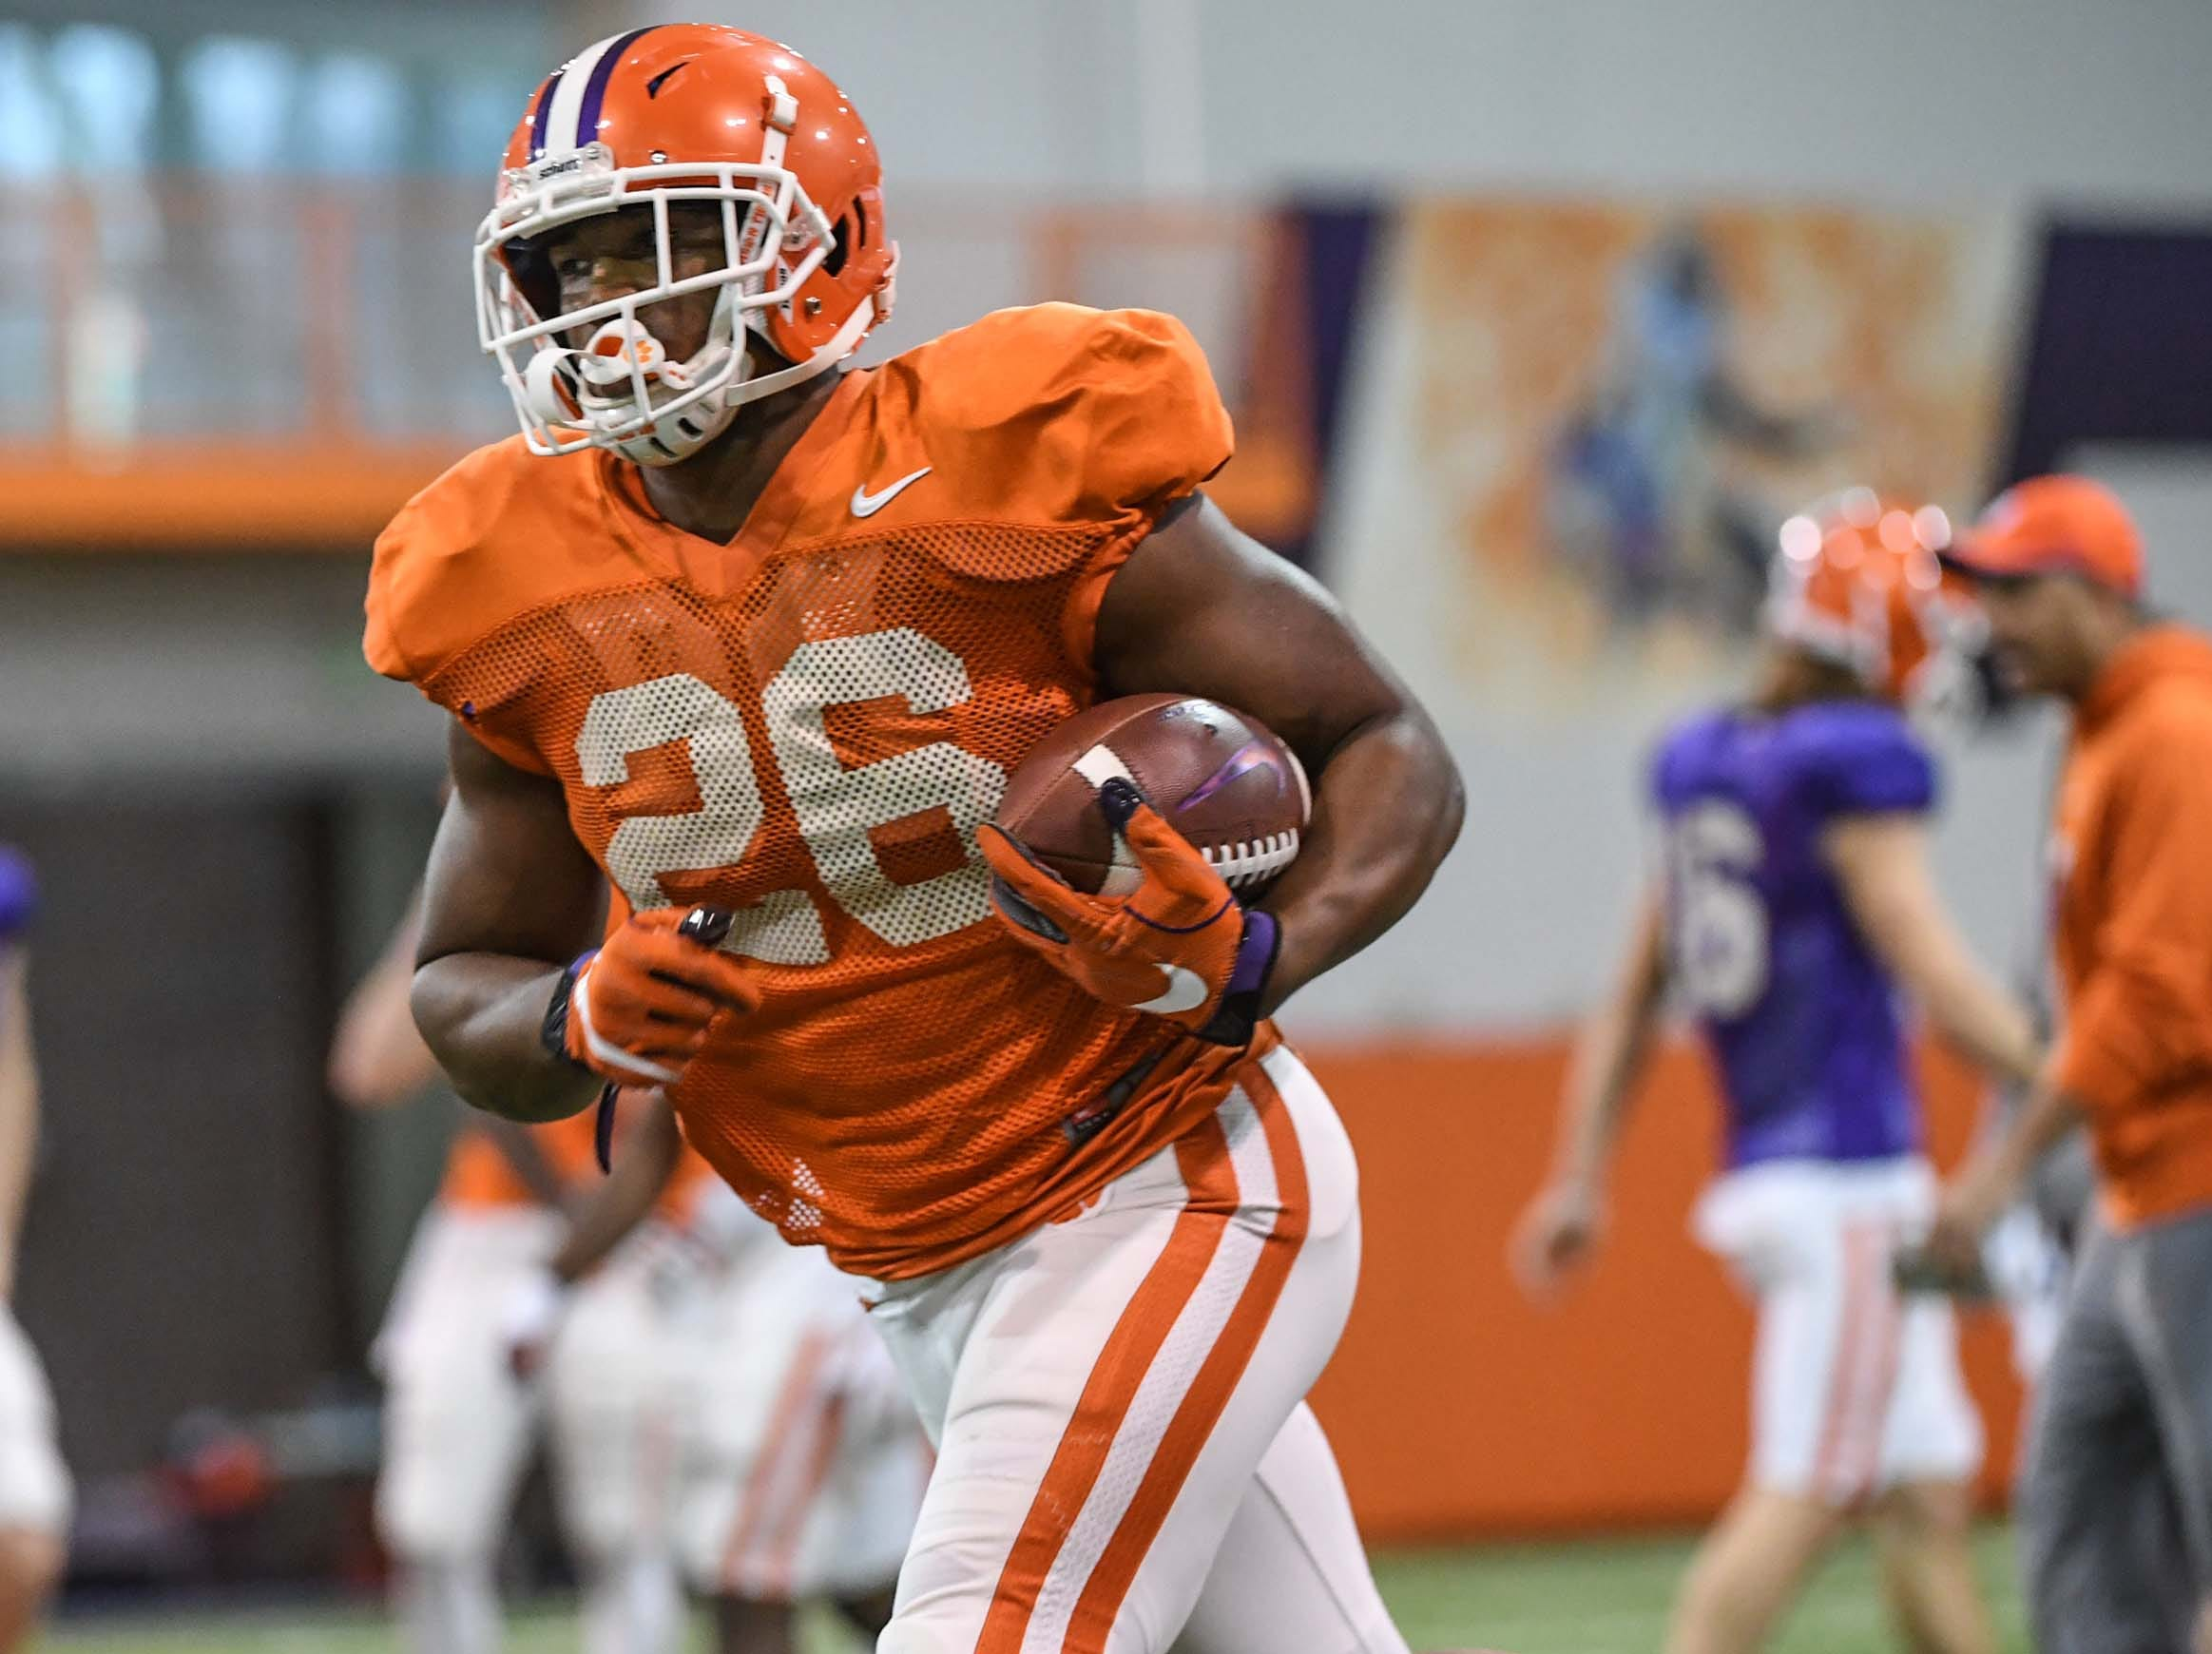 Clemson running back Adam Choice (26) runs after a catch during practice for the Cotton Bowl at the Poe Indoor Facility in Clemson Friday, December 14, 2018.